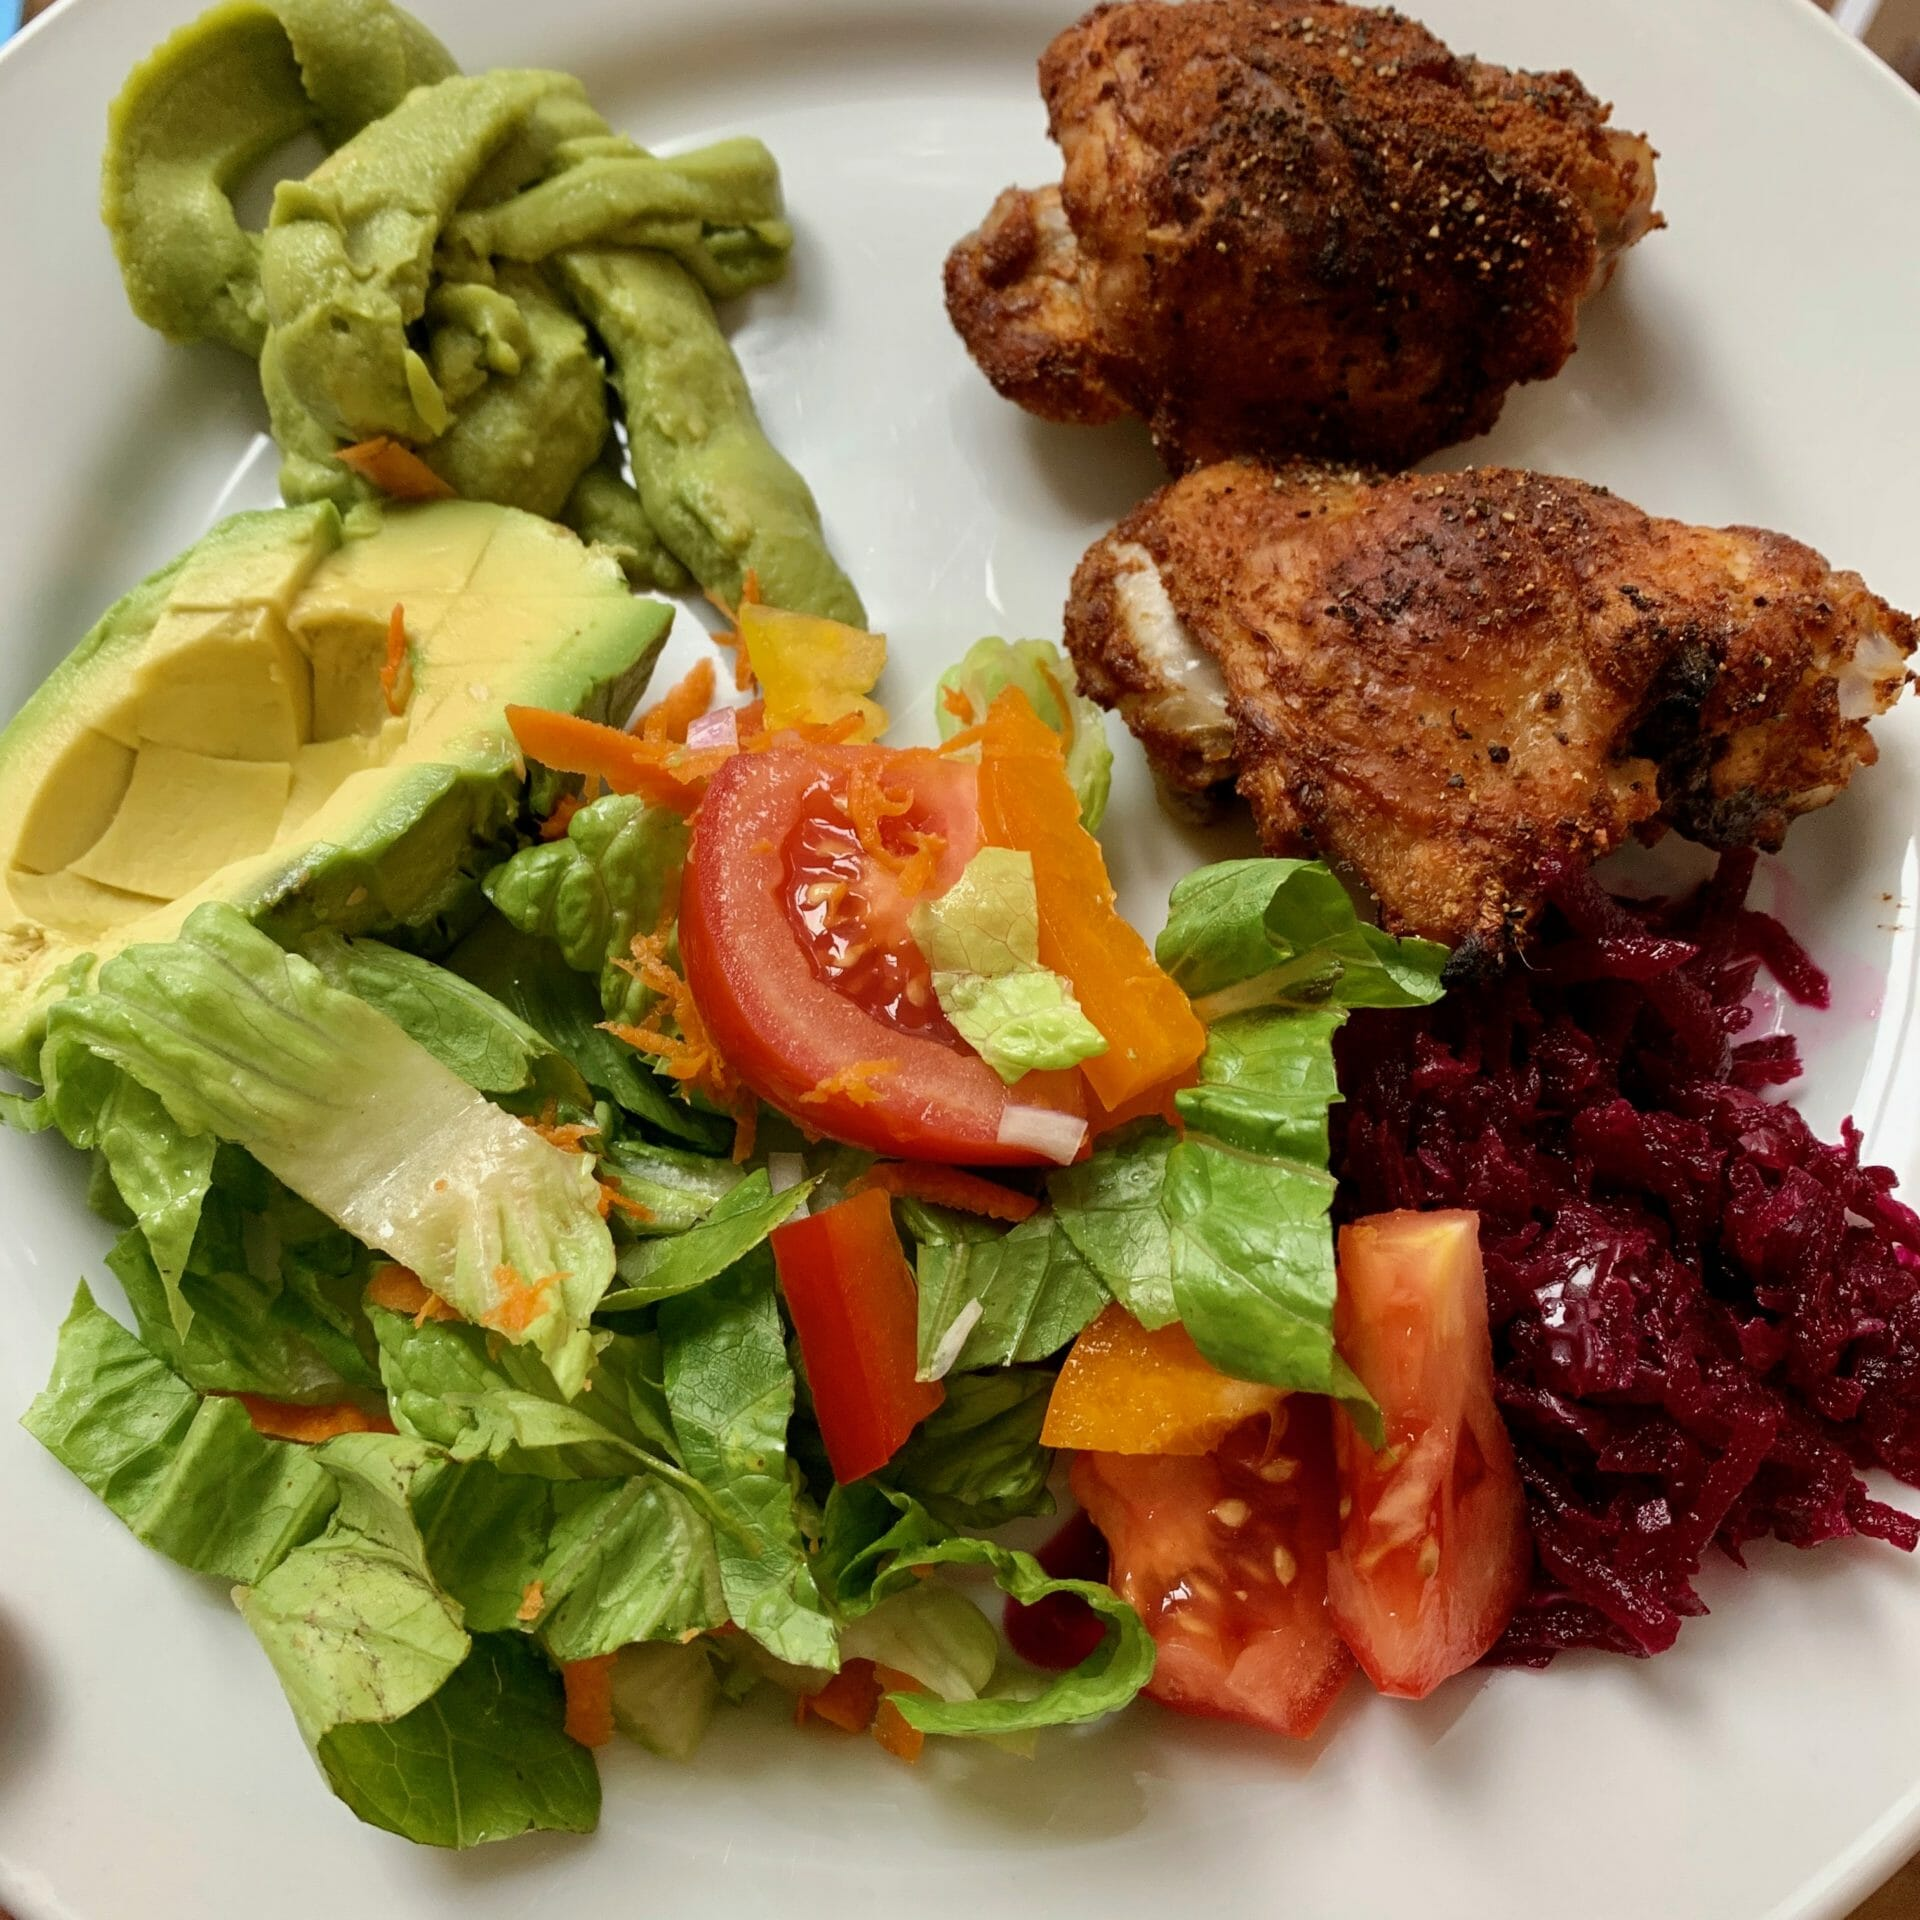 Fried chicken with lettuce, peppers, tomatoes, avocado, guacamole and fermented red beets